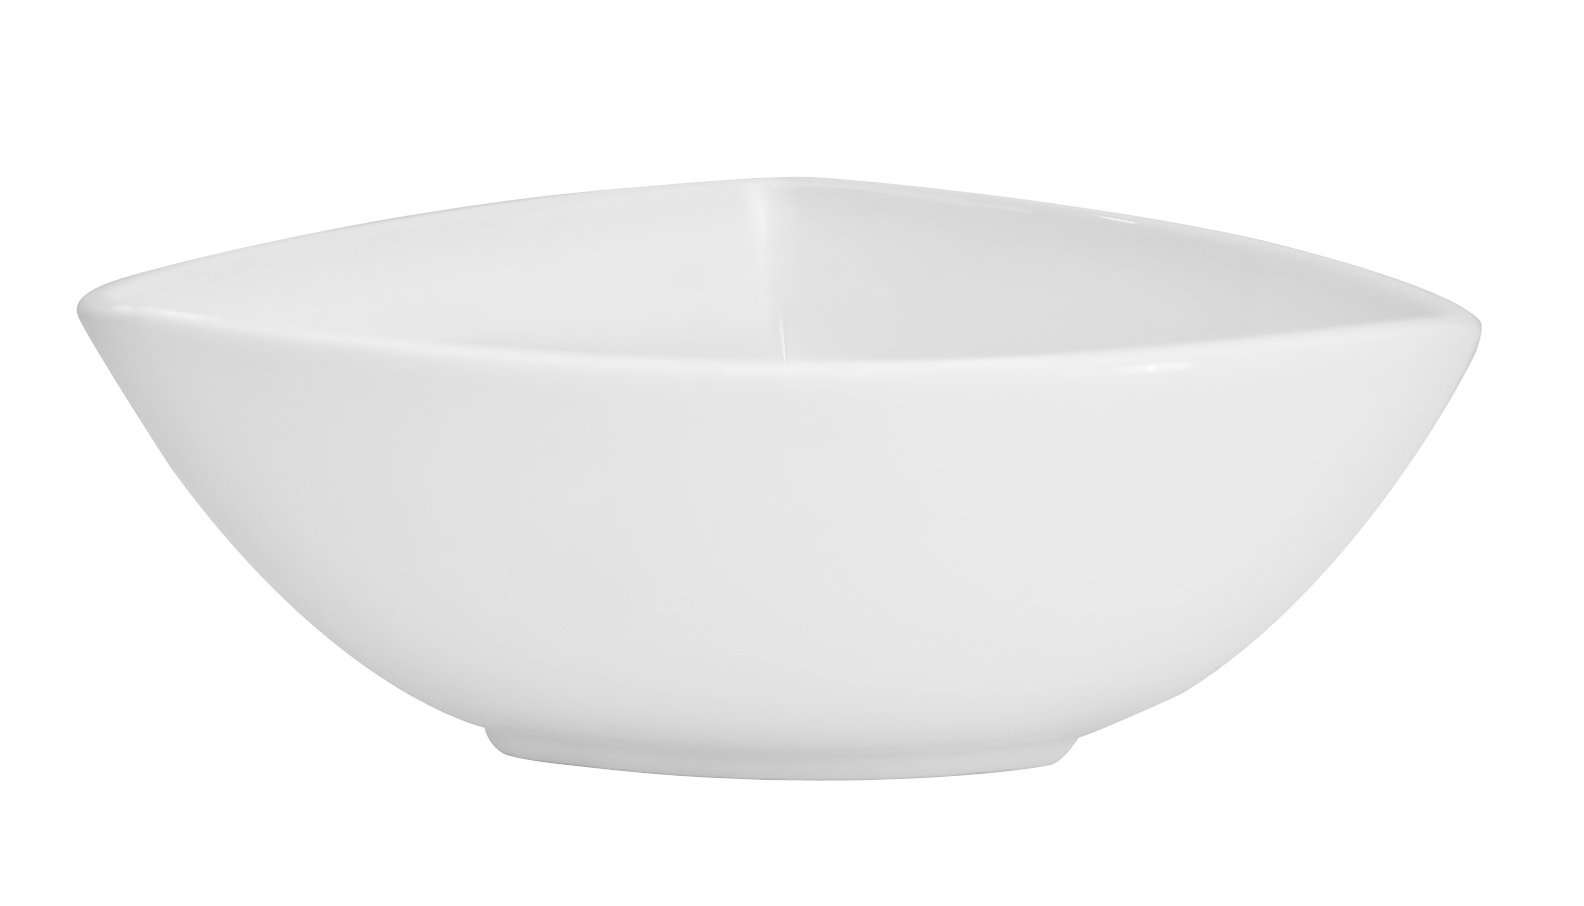 CAC China TUP-B9 Triumph 9-Inch 54-Ounce Super White Porcelain Triangular Bowl, Box of 12